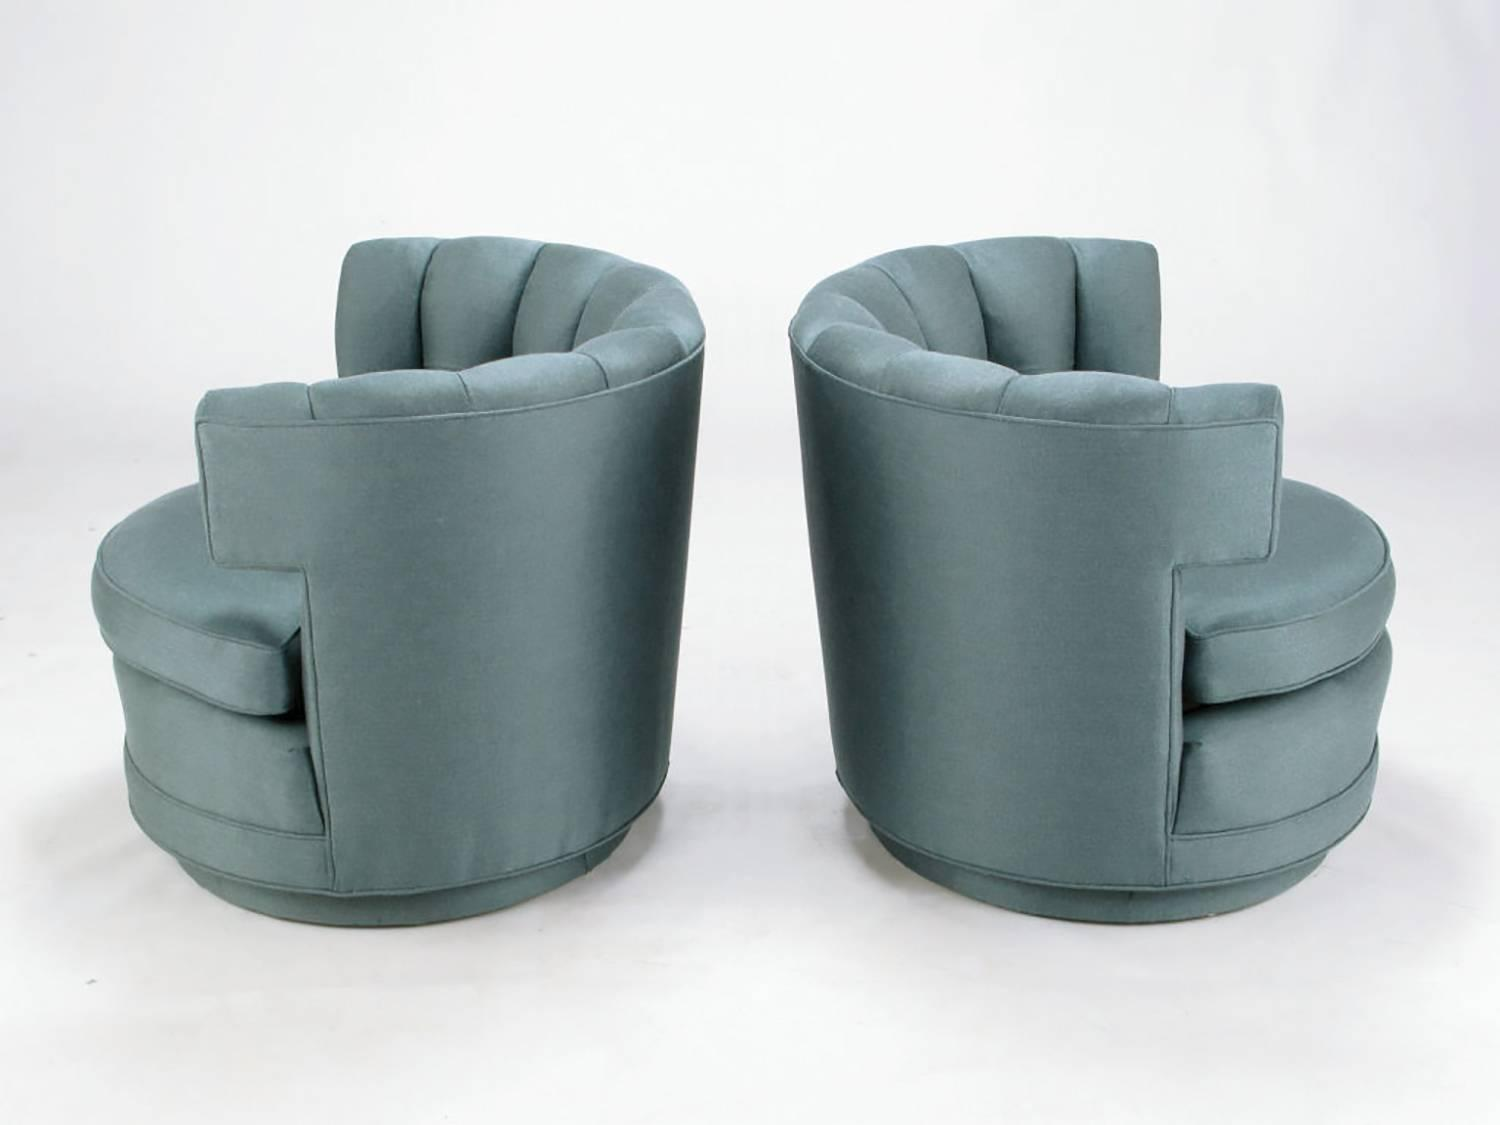 barrel swivel chairs upholstered cafe metal pair of cadet-blue wool felt button-tufted for sale at 1stdibs